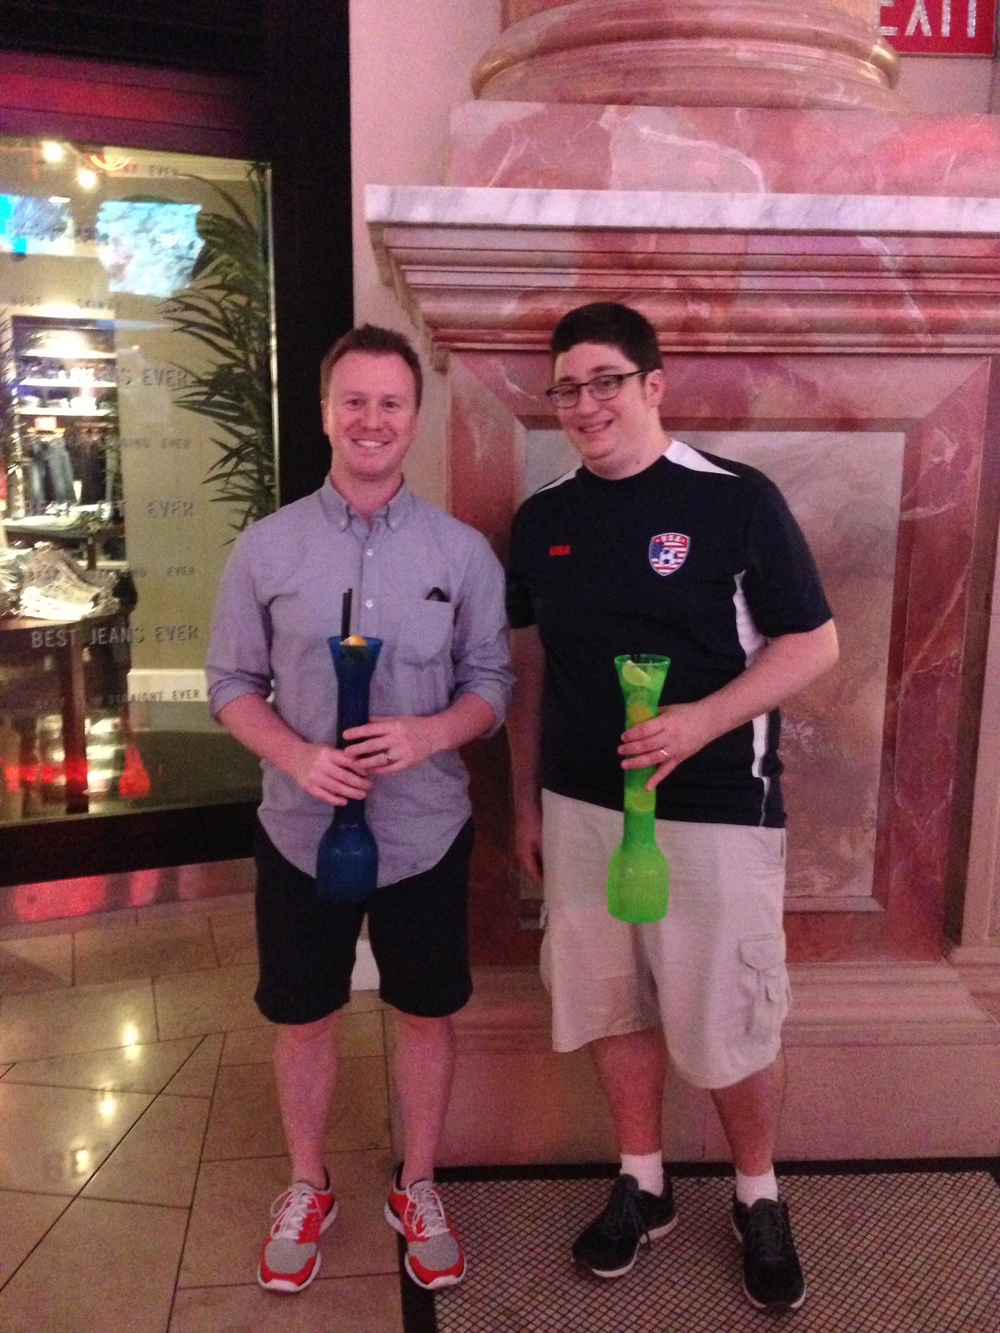 Jason and Mike with their cucumber vodka drinks.